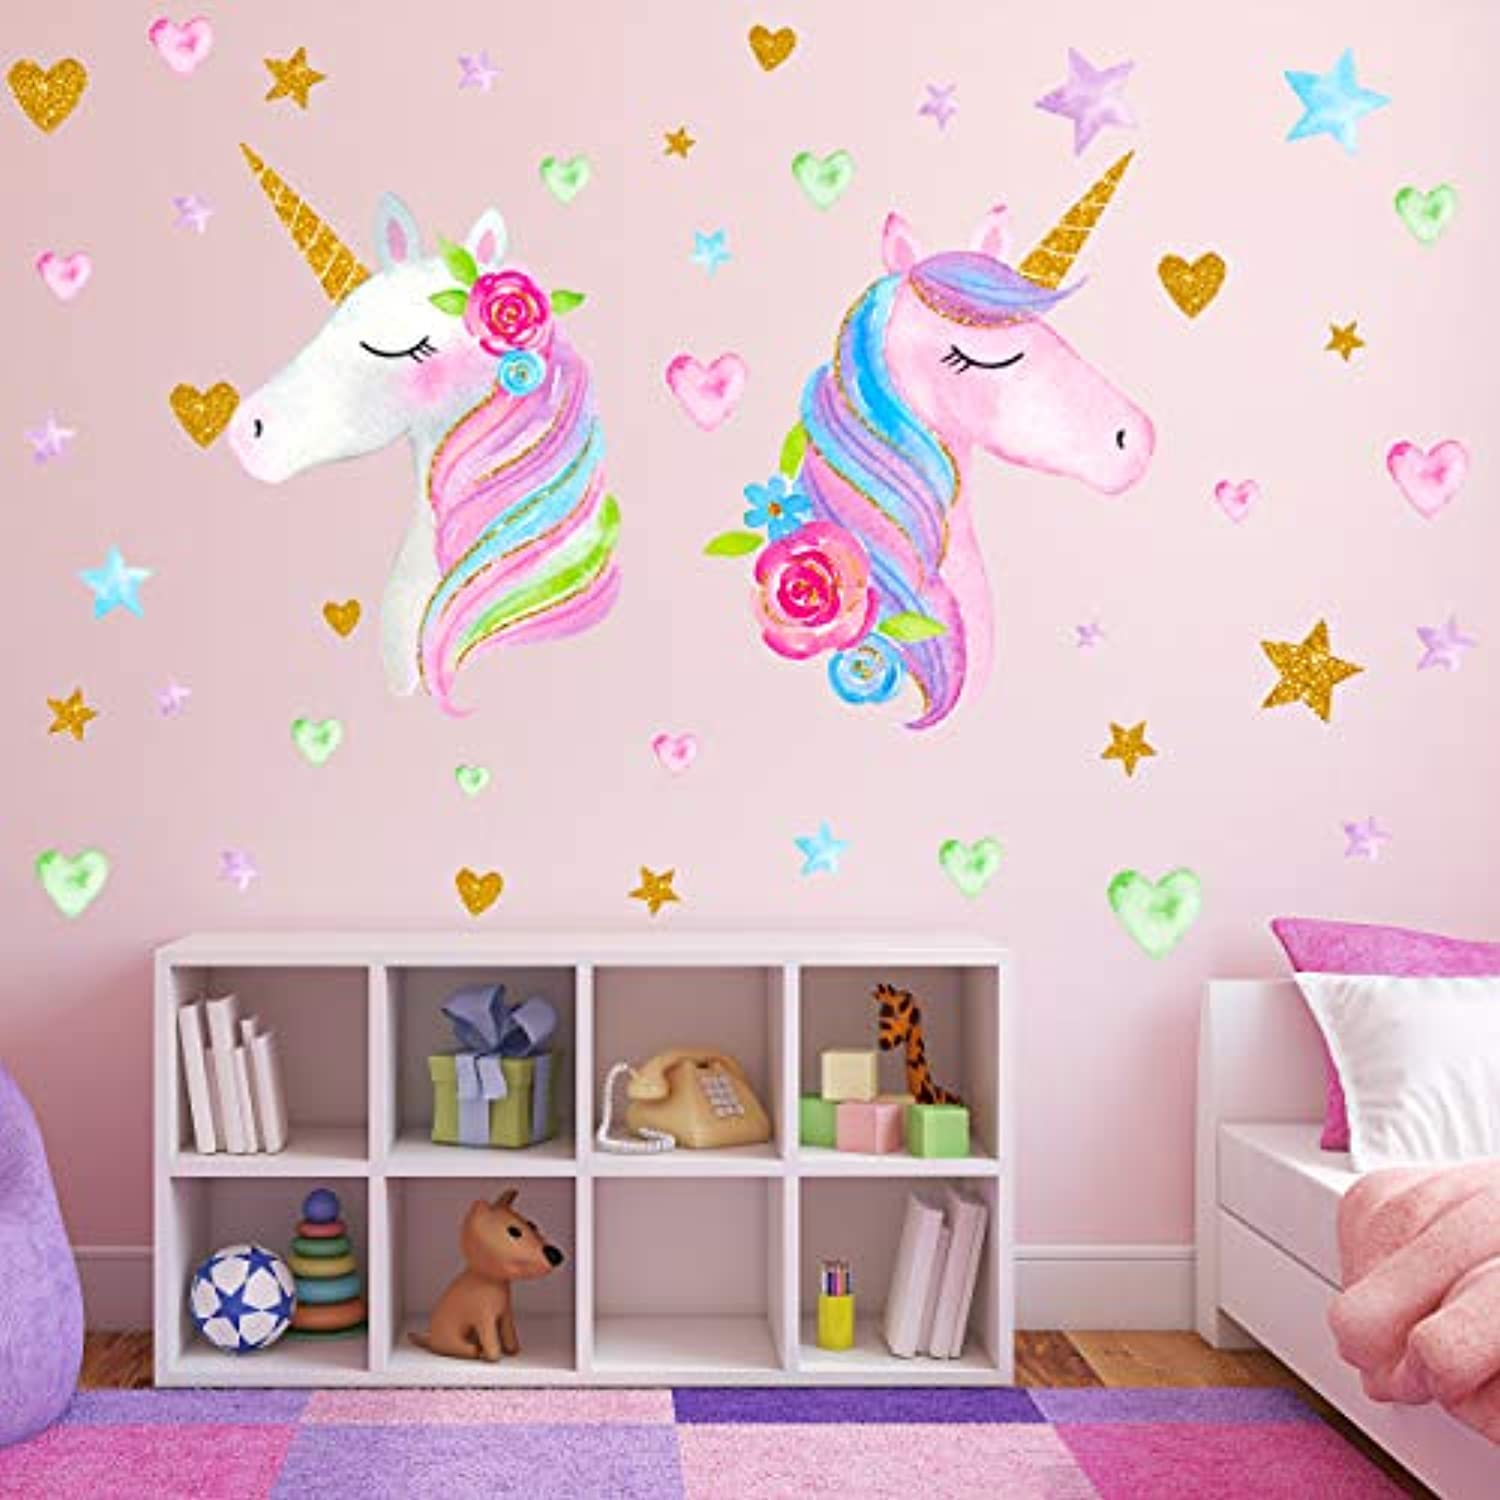 Classier: Buy Neasyth 2 Sheets Large Size Unicorn Wall Decor,Removable Unicorn Wall Decals Stickers Decor for Gilrs Kids Bedroom Nursery Birthday Party Favor(Neasyth Store 9.99 $) (2 PCS)